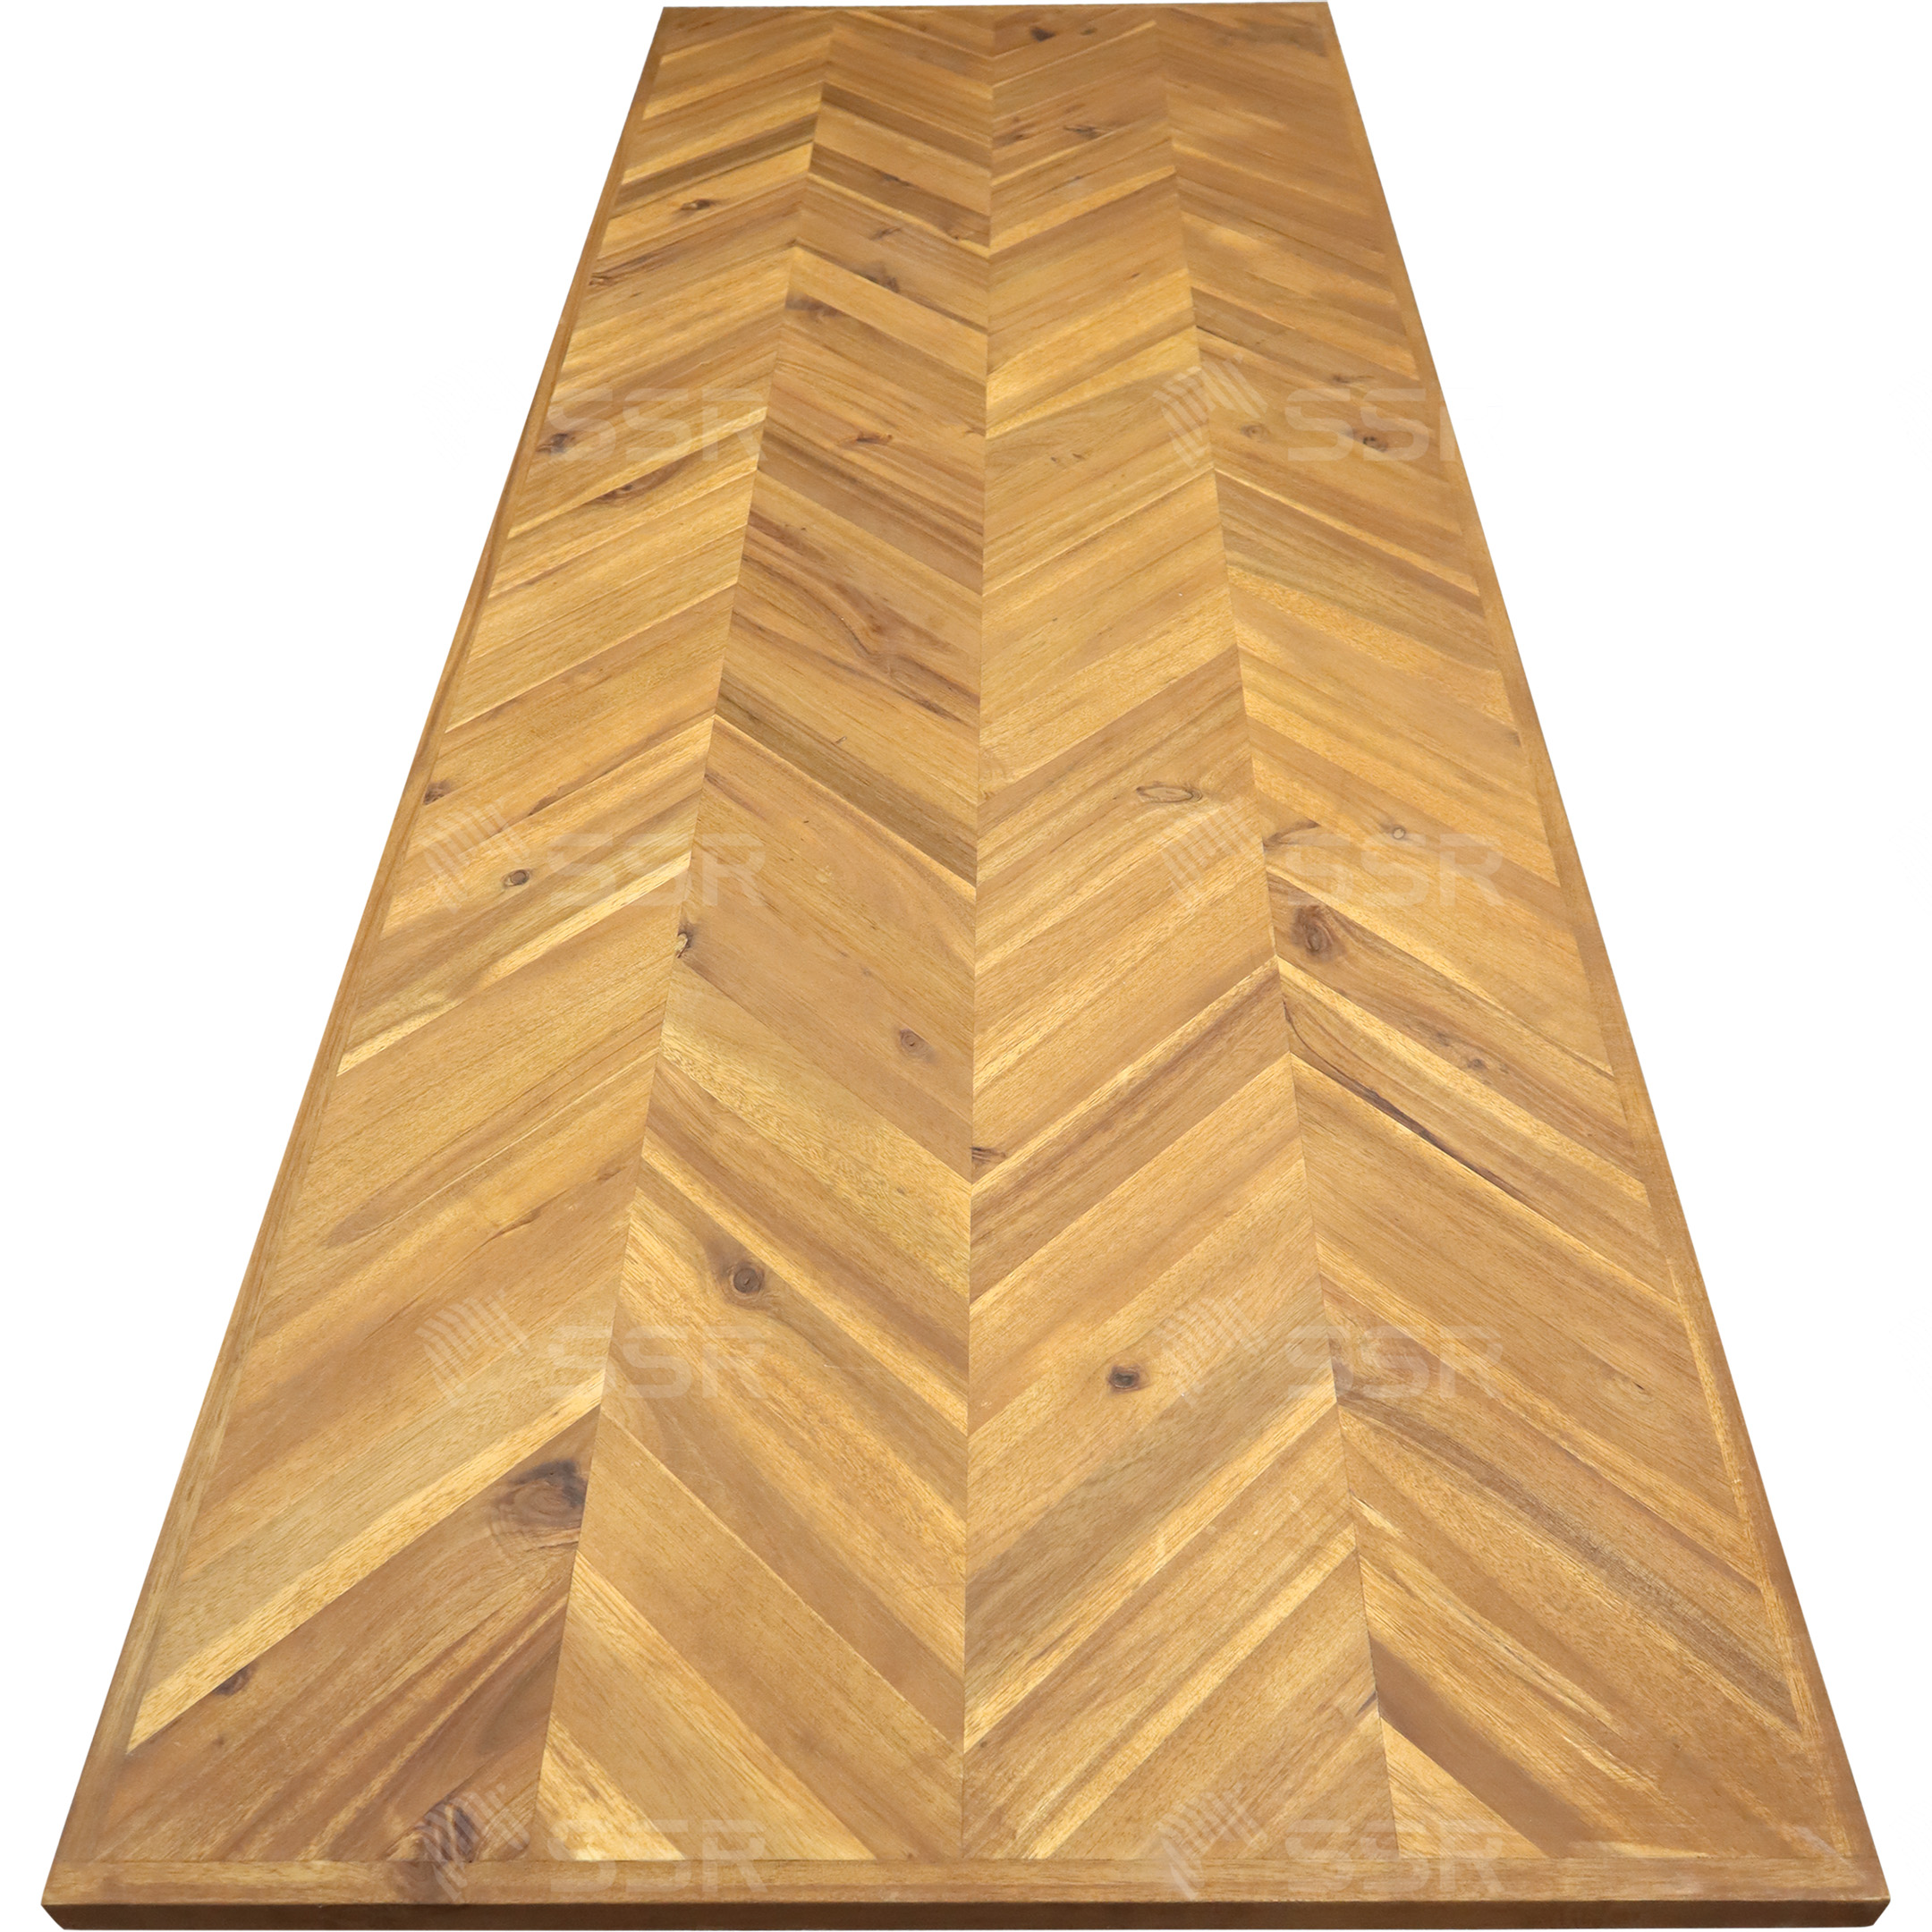 Acacia Chevrons Panneau de bois Planche de bois Bois vernis Revêtement d'huile Finition à l'huile L'industrie du bois Global Commerce Fournisseur international de produits en bois De gros Certifié FSC Commerce international Importation Exportation